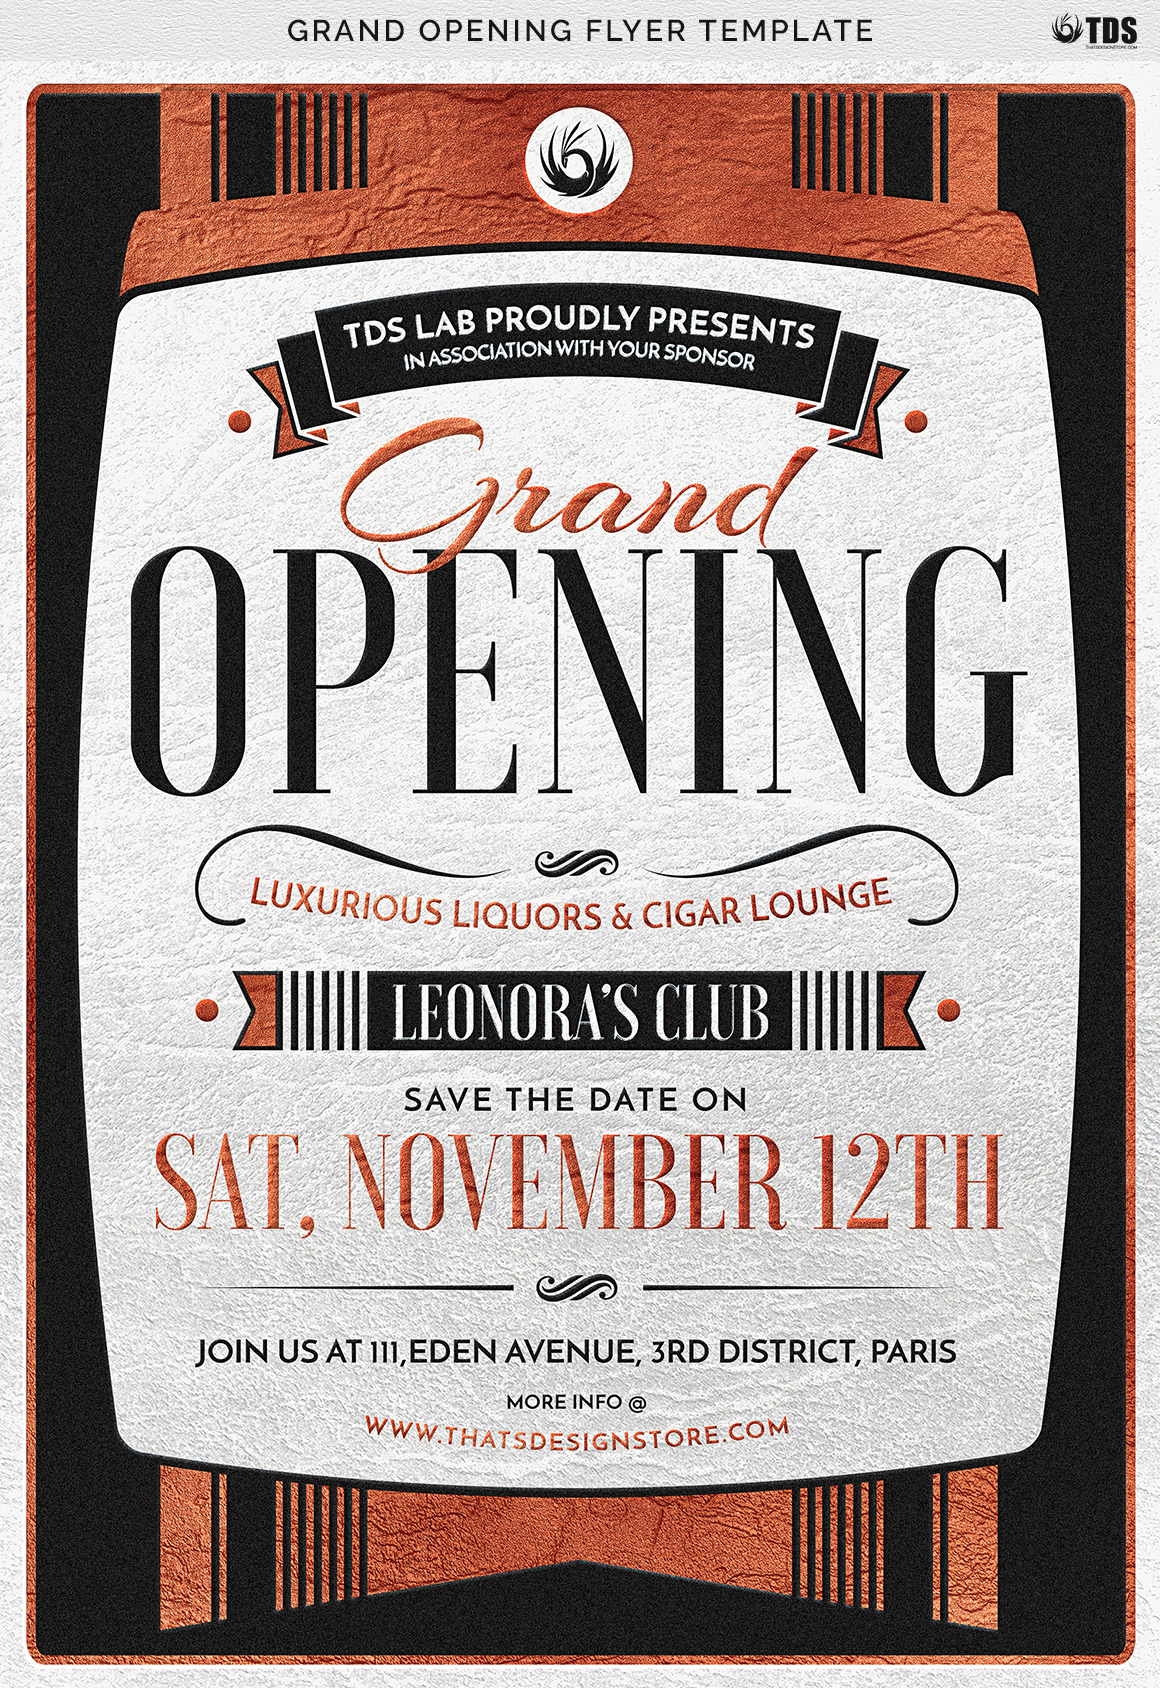 Grand Opening Flyer Template example image 8